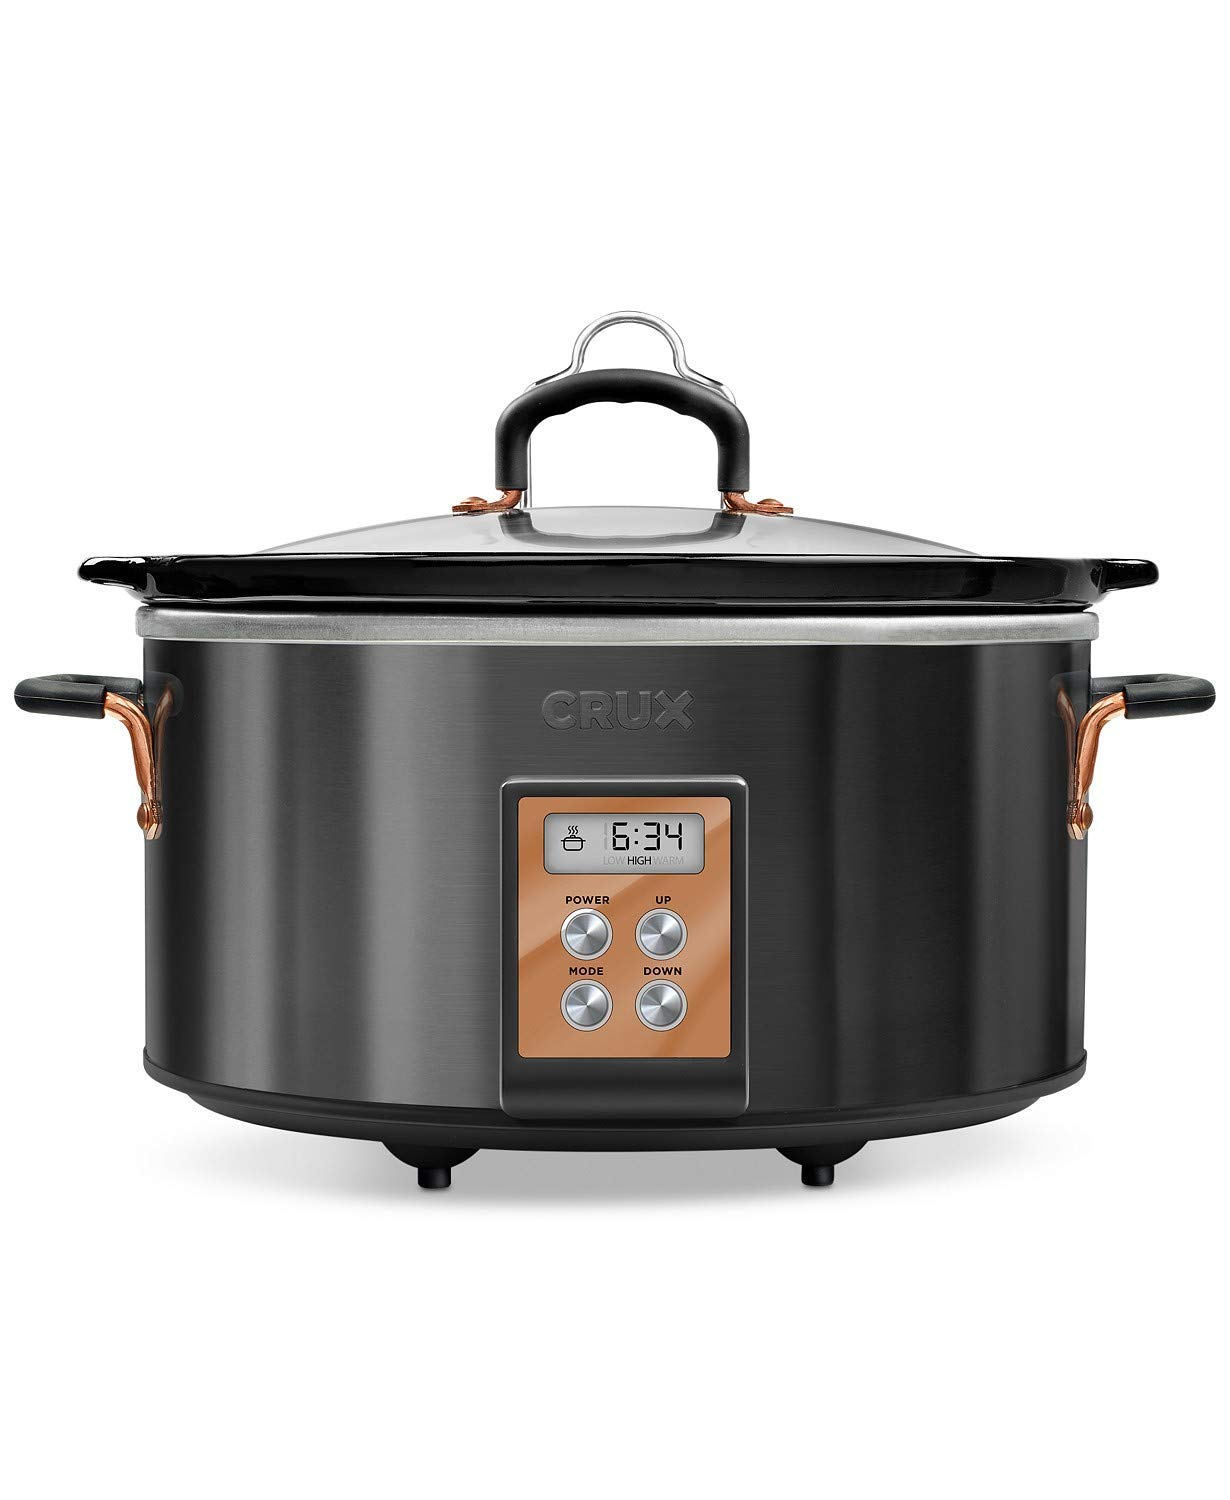 Crux 14624 6-Qt. Programmable Slow Cooker (Black)